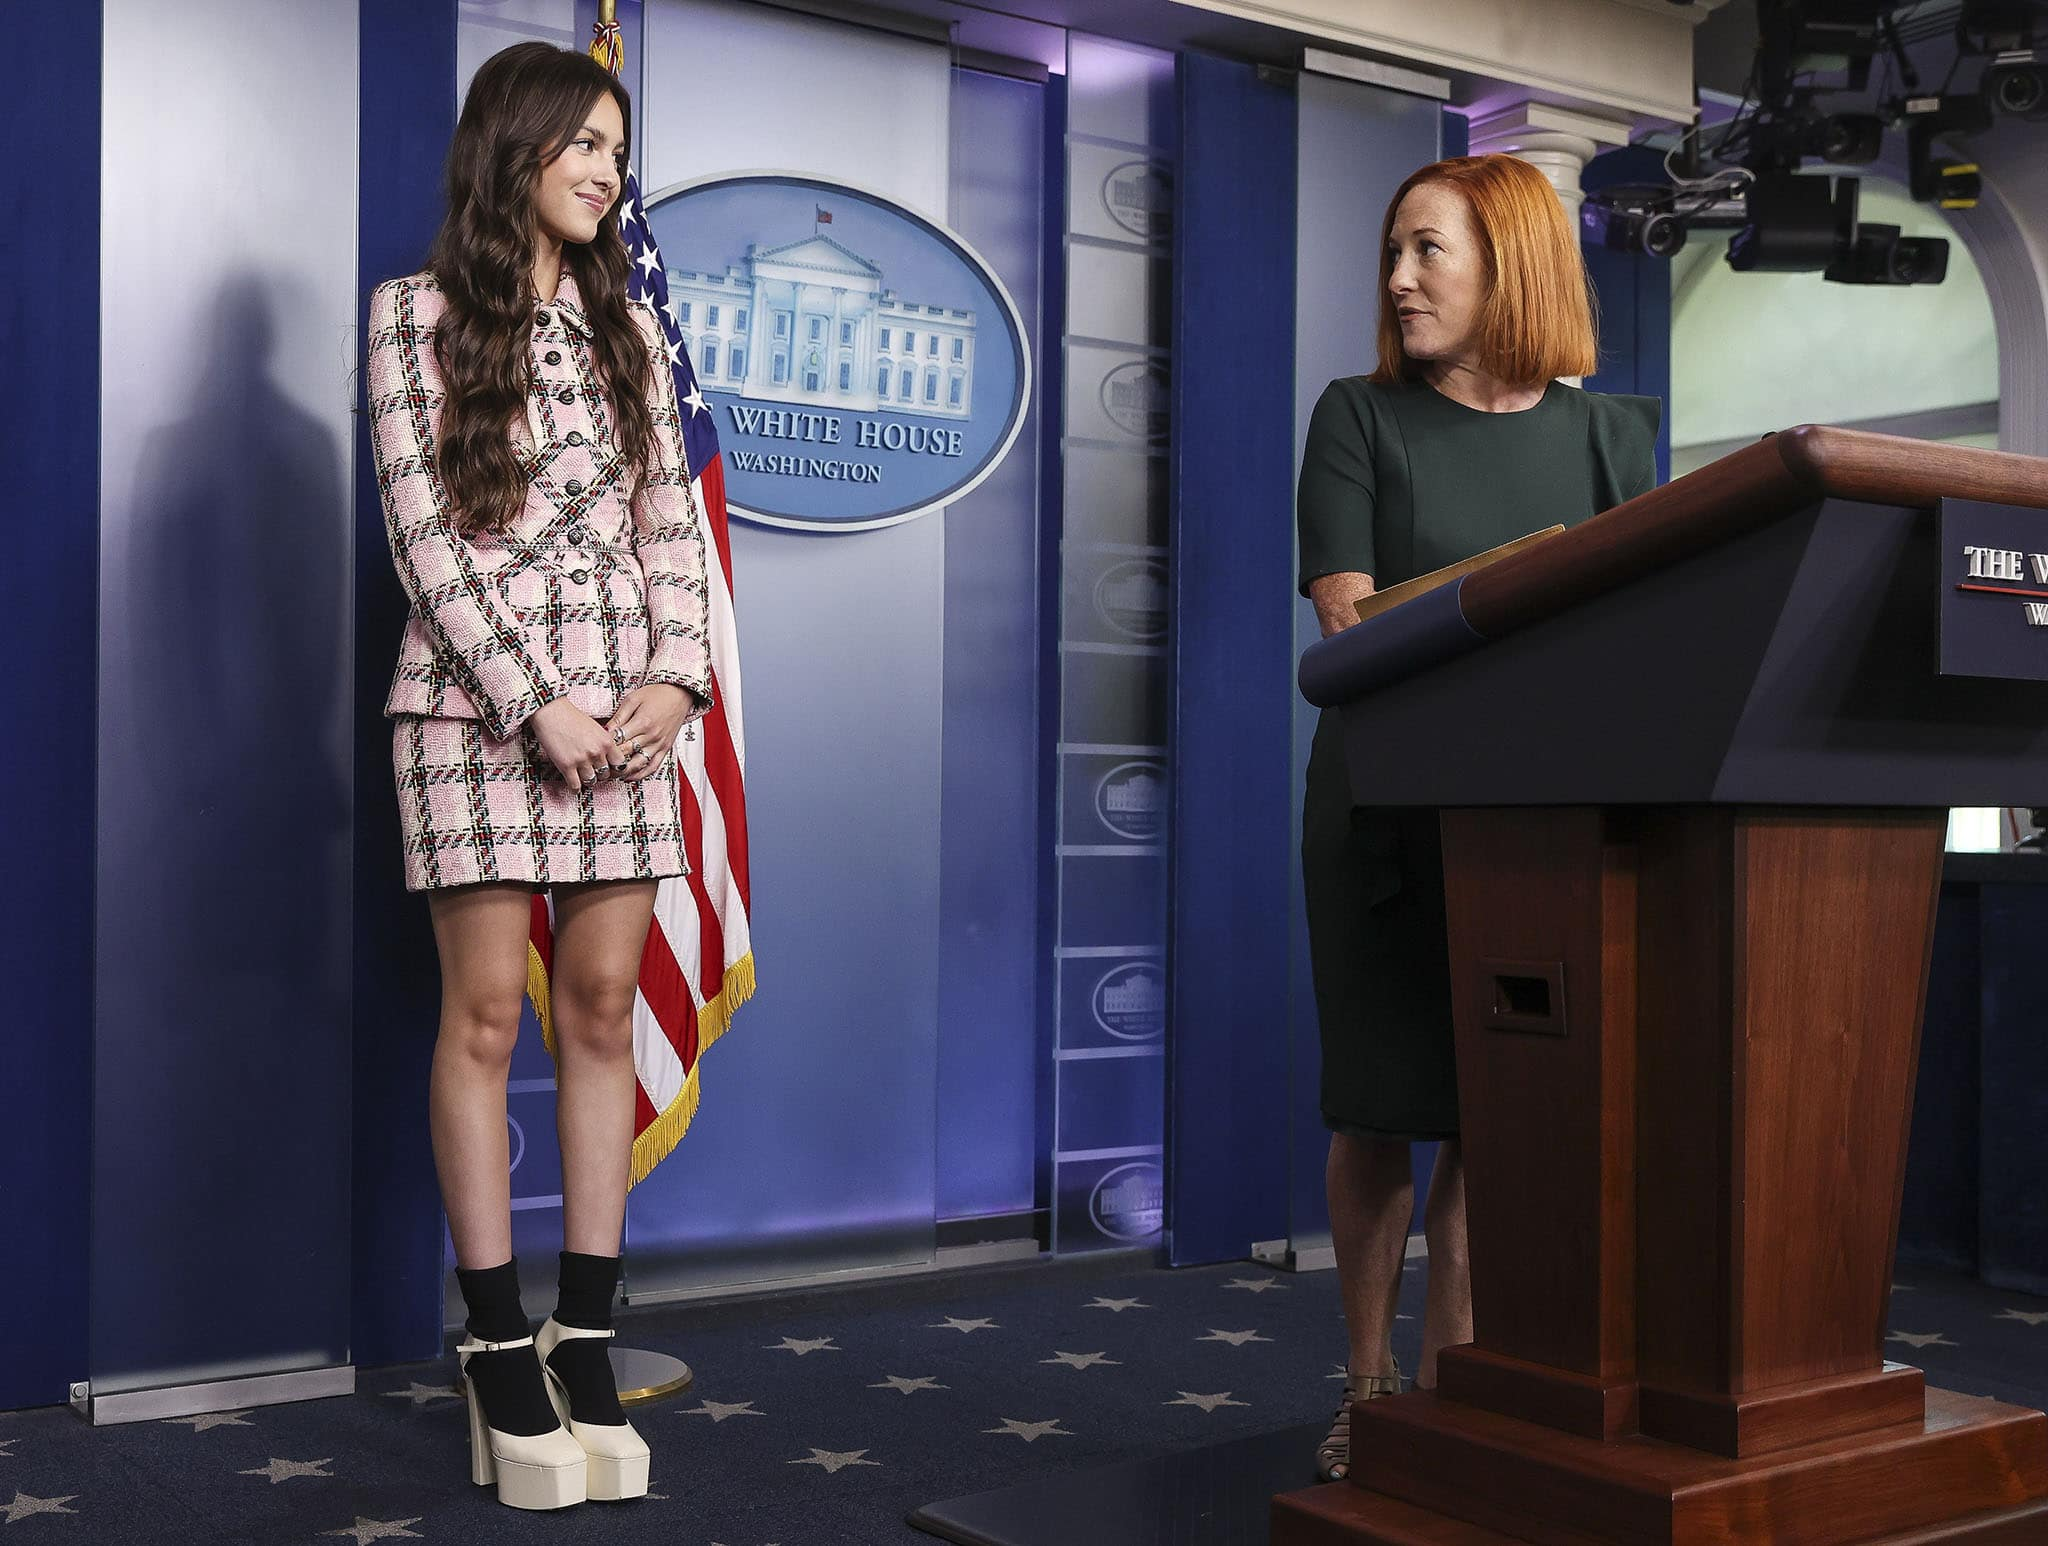 President Biden's administration tapped Olivia Rodrigo to urge young people to get vaccinated against COVID-19